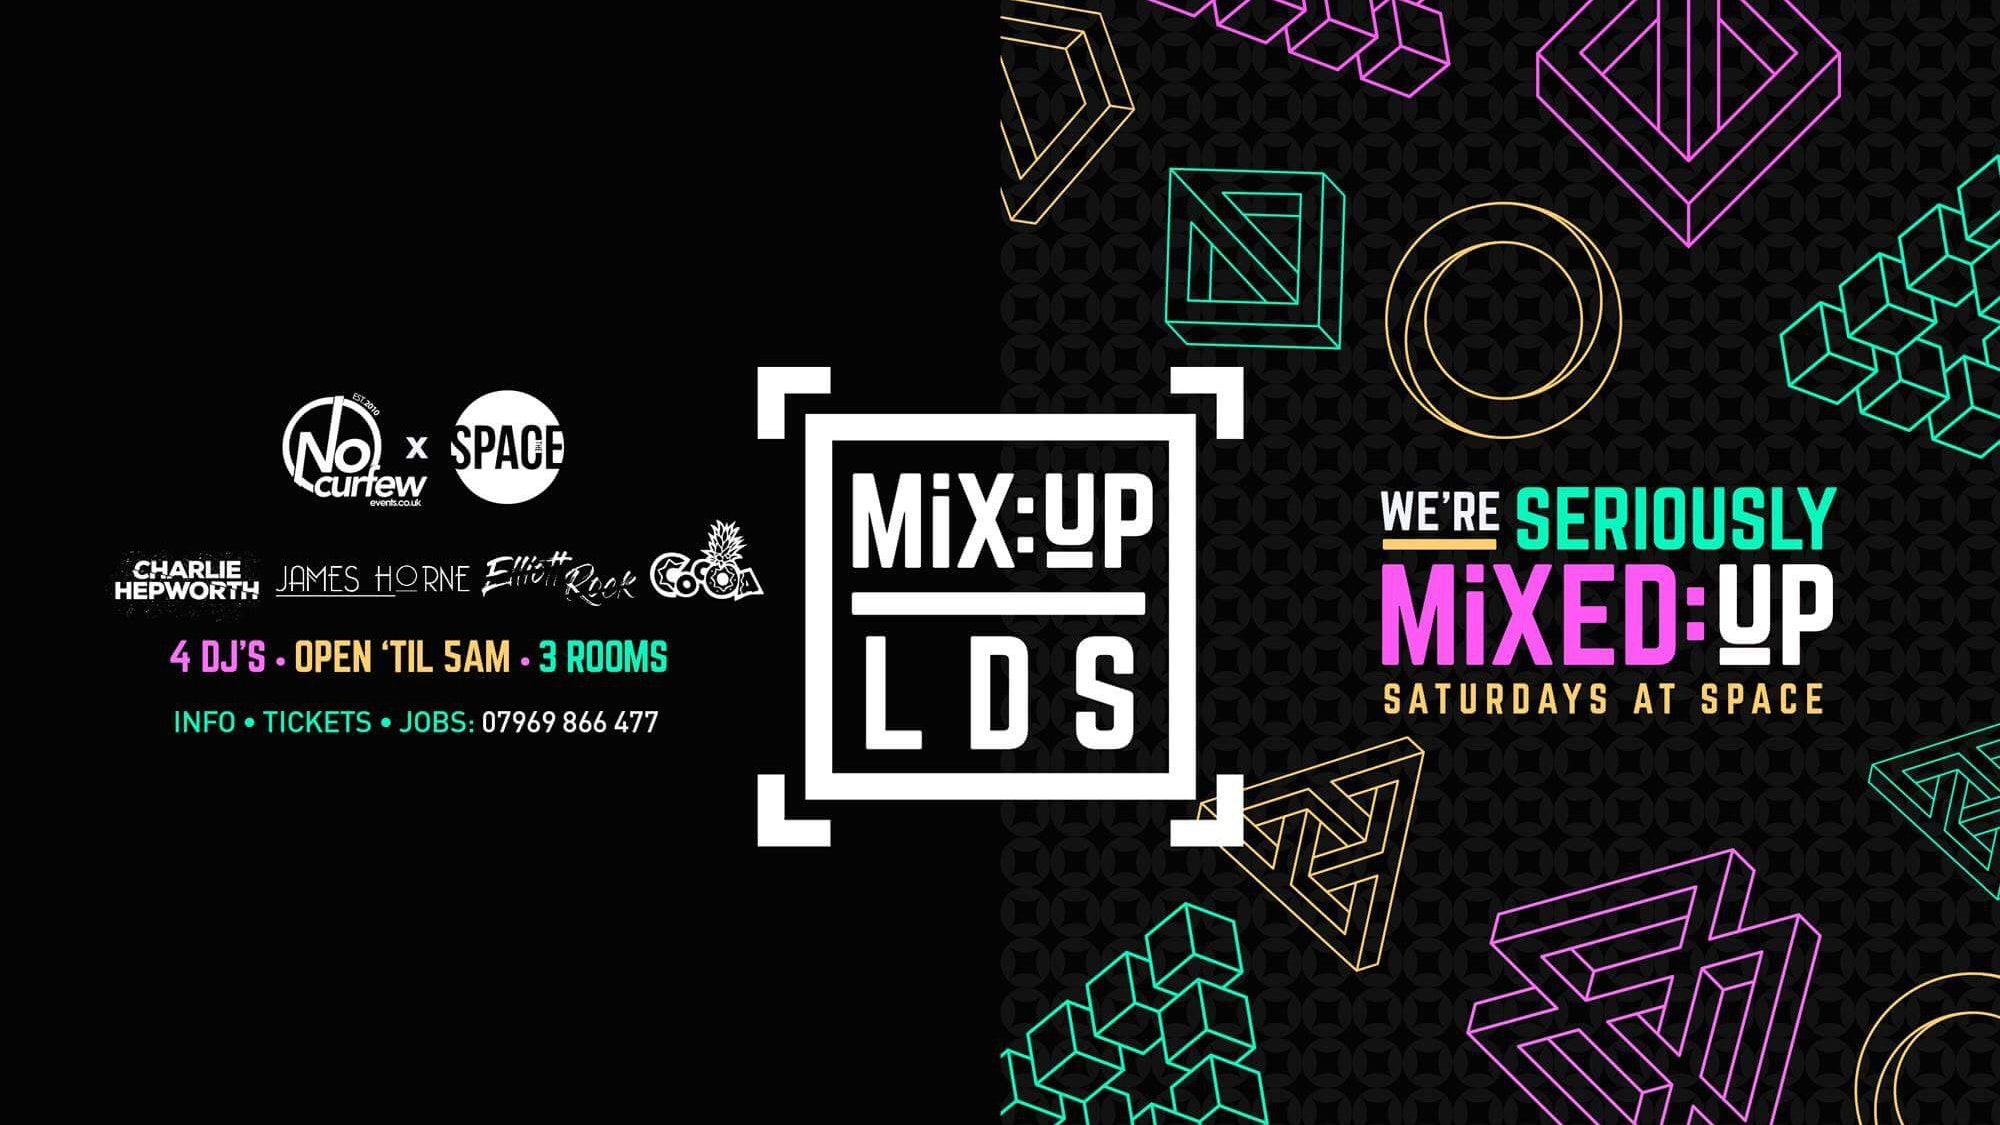 MiX:UP LDS at Space :: 23rd March :: £1.50 Drinks!